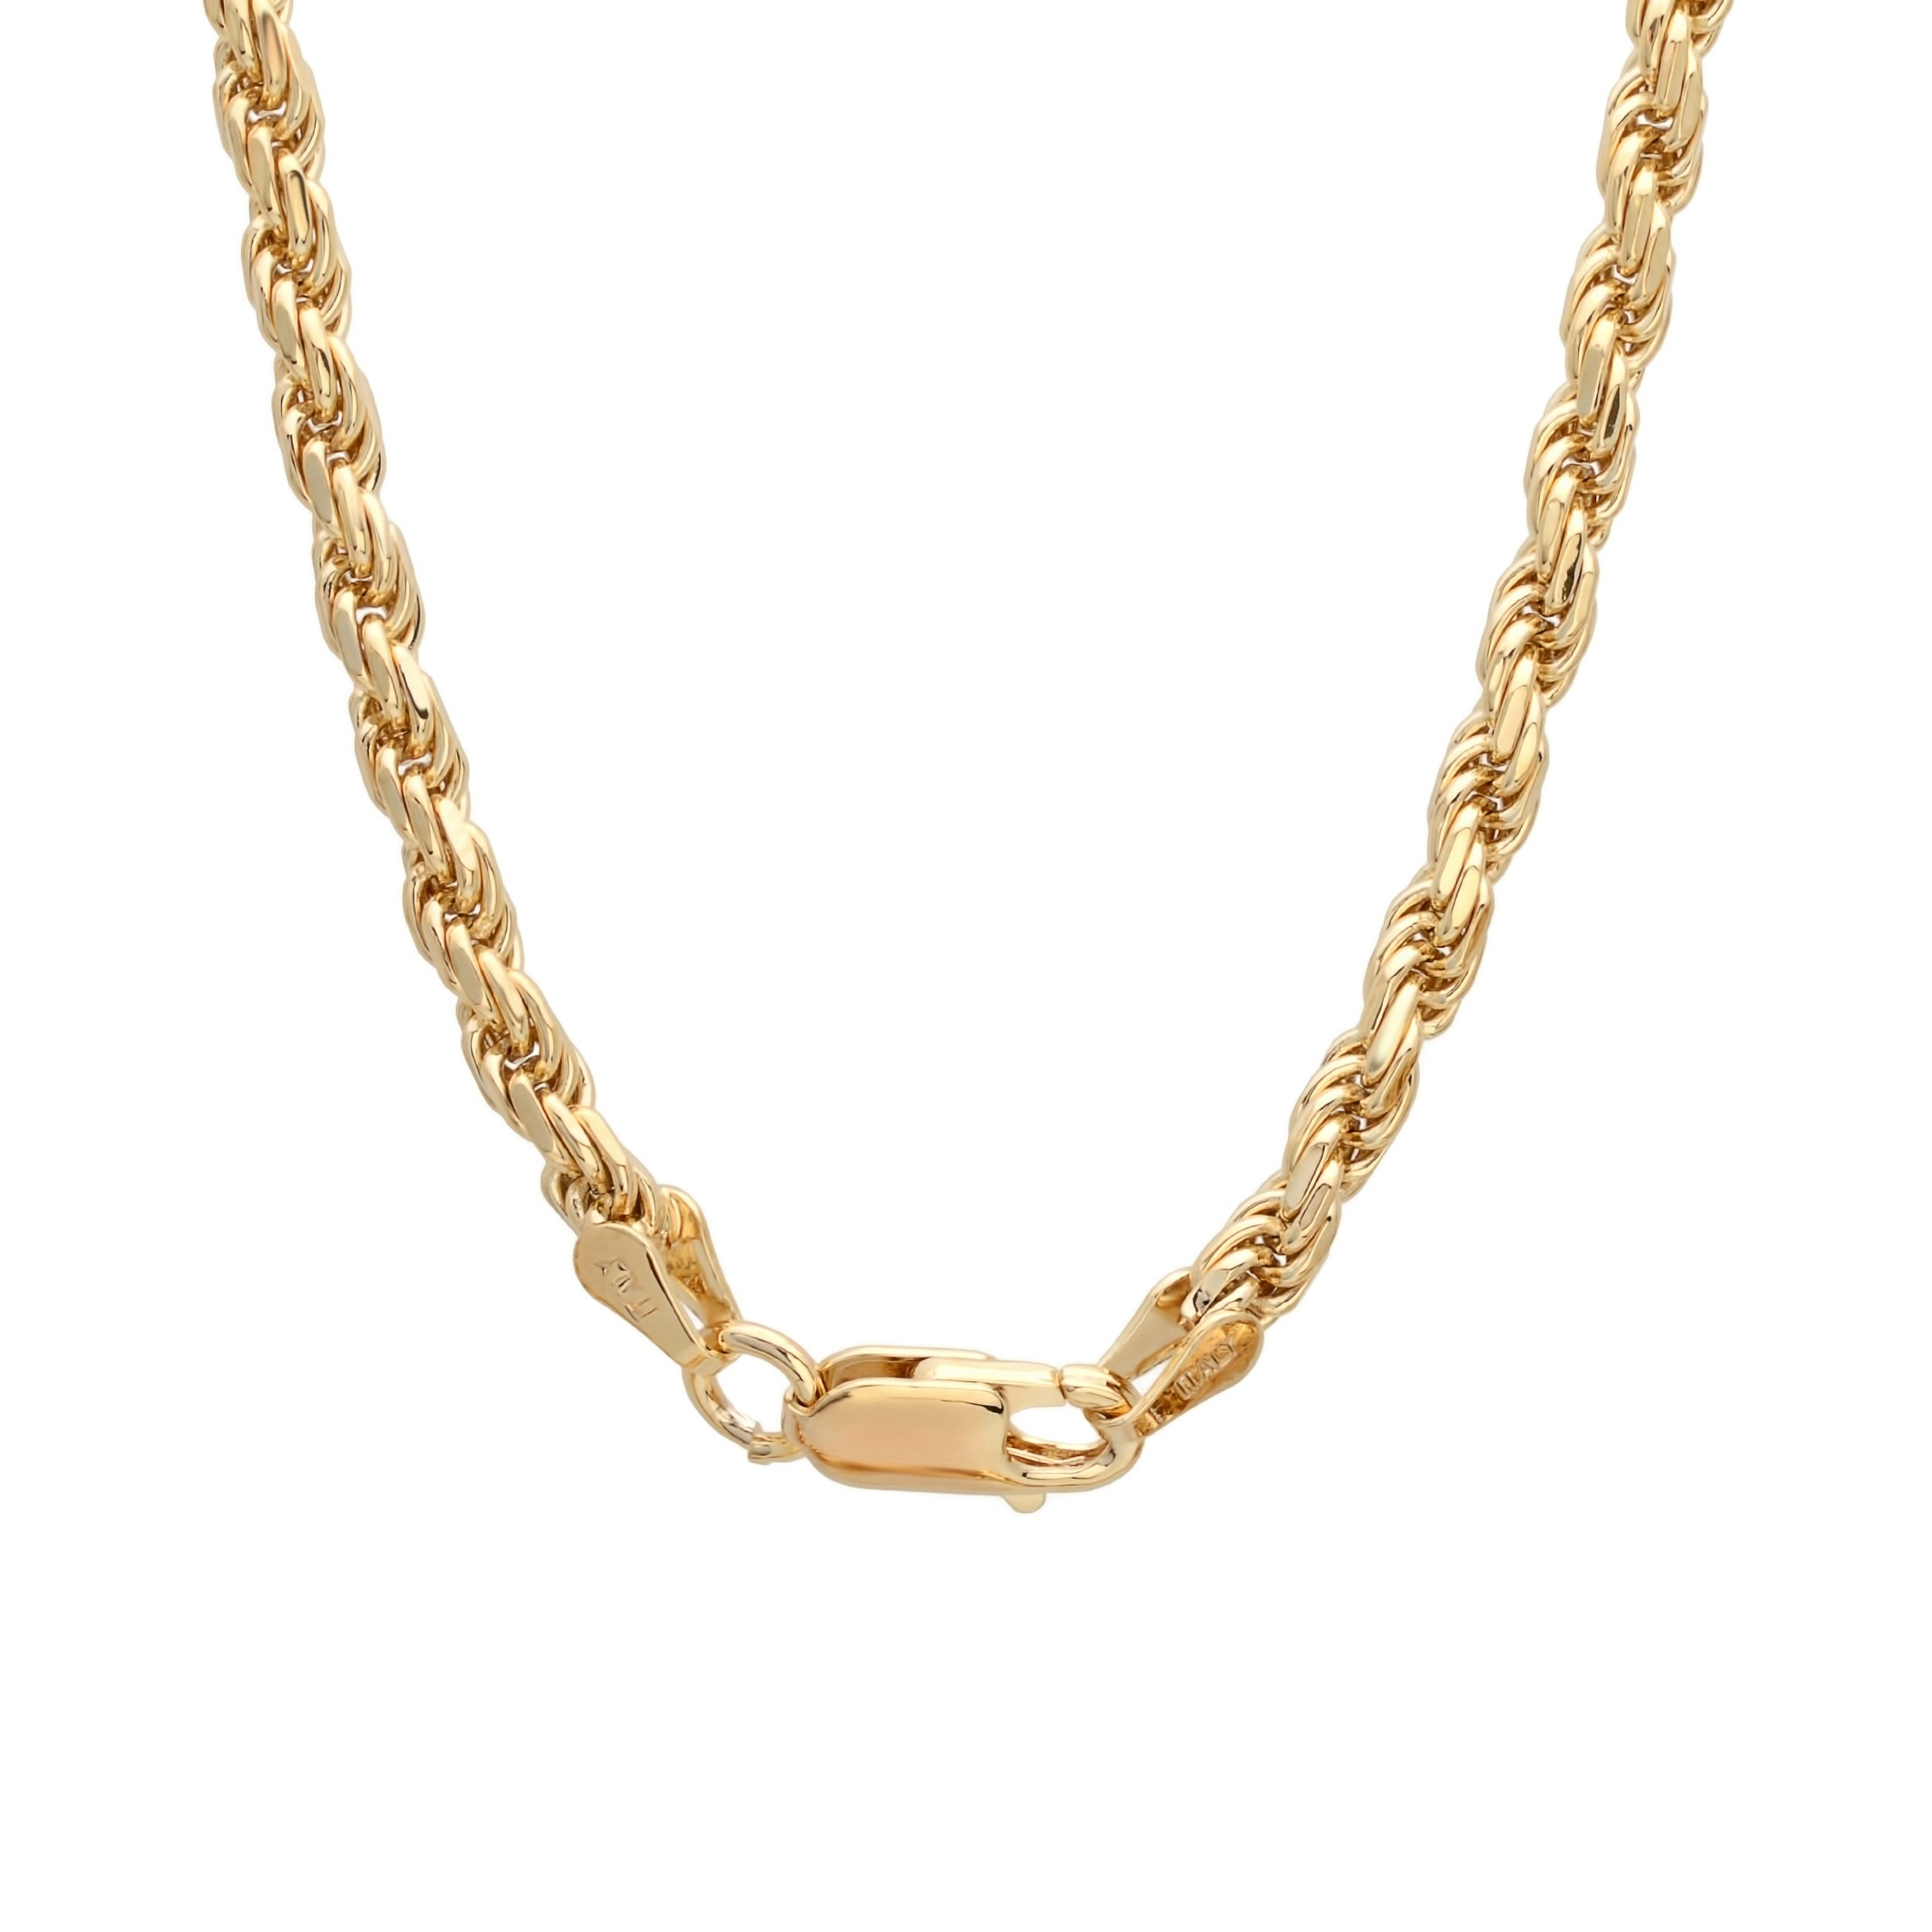 """18K Gold Filled Figaro Chain with Lobster Claw Clasp 18/"""" Long 2.5 mm Wide"""